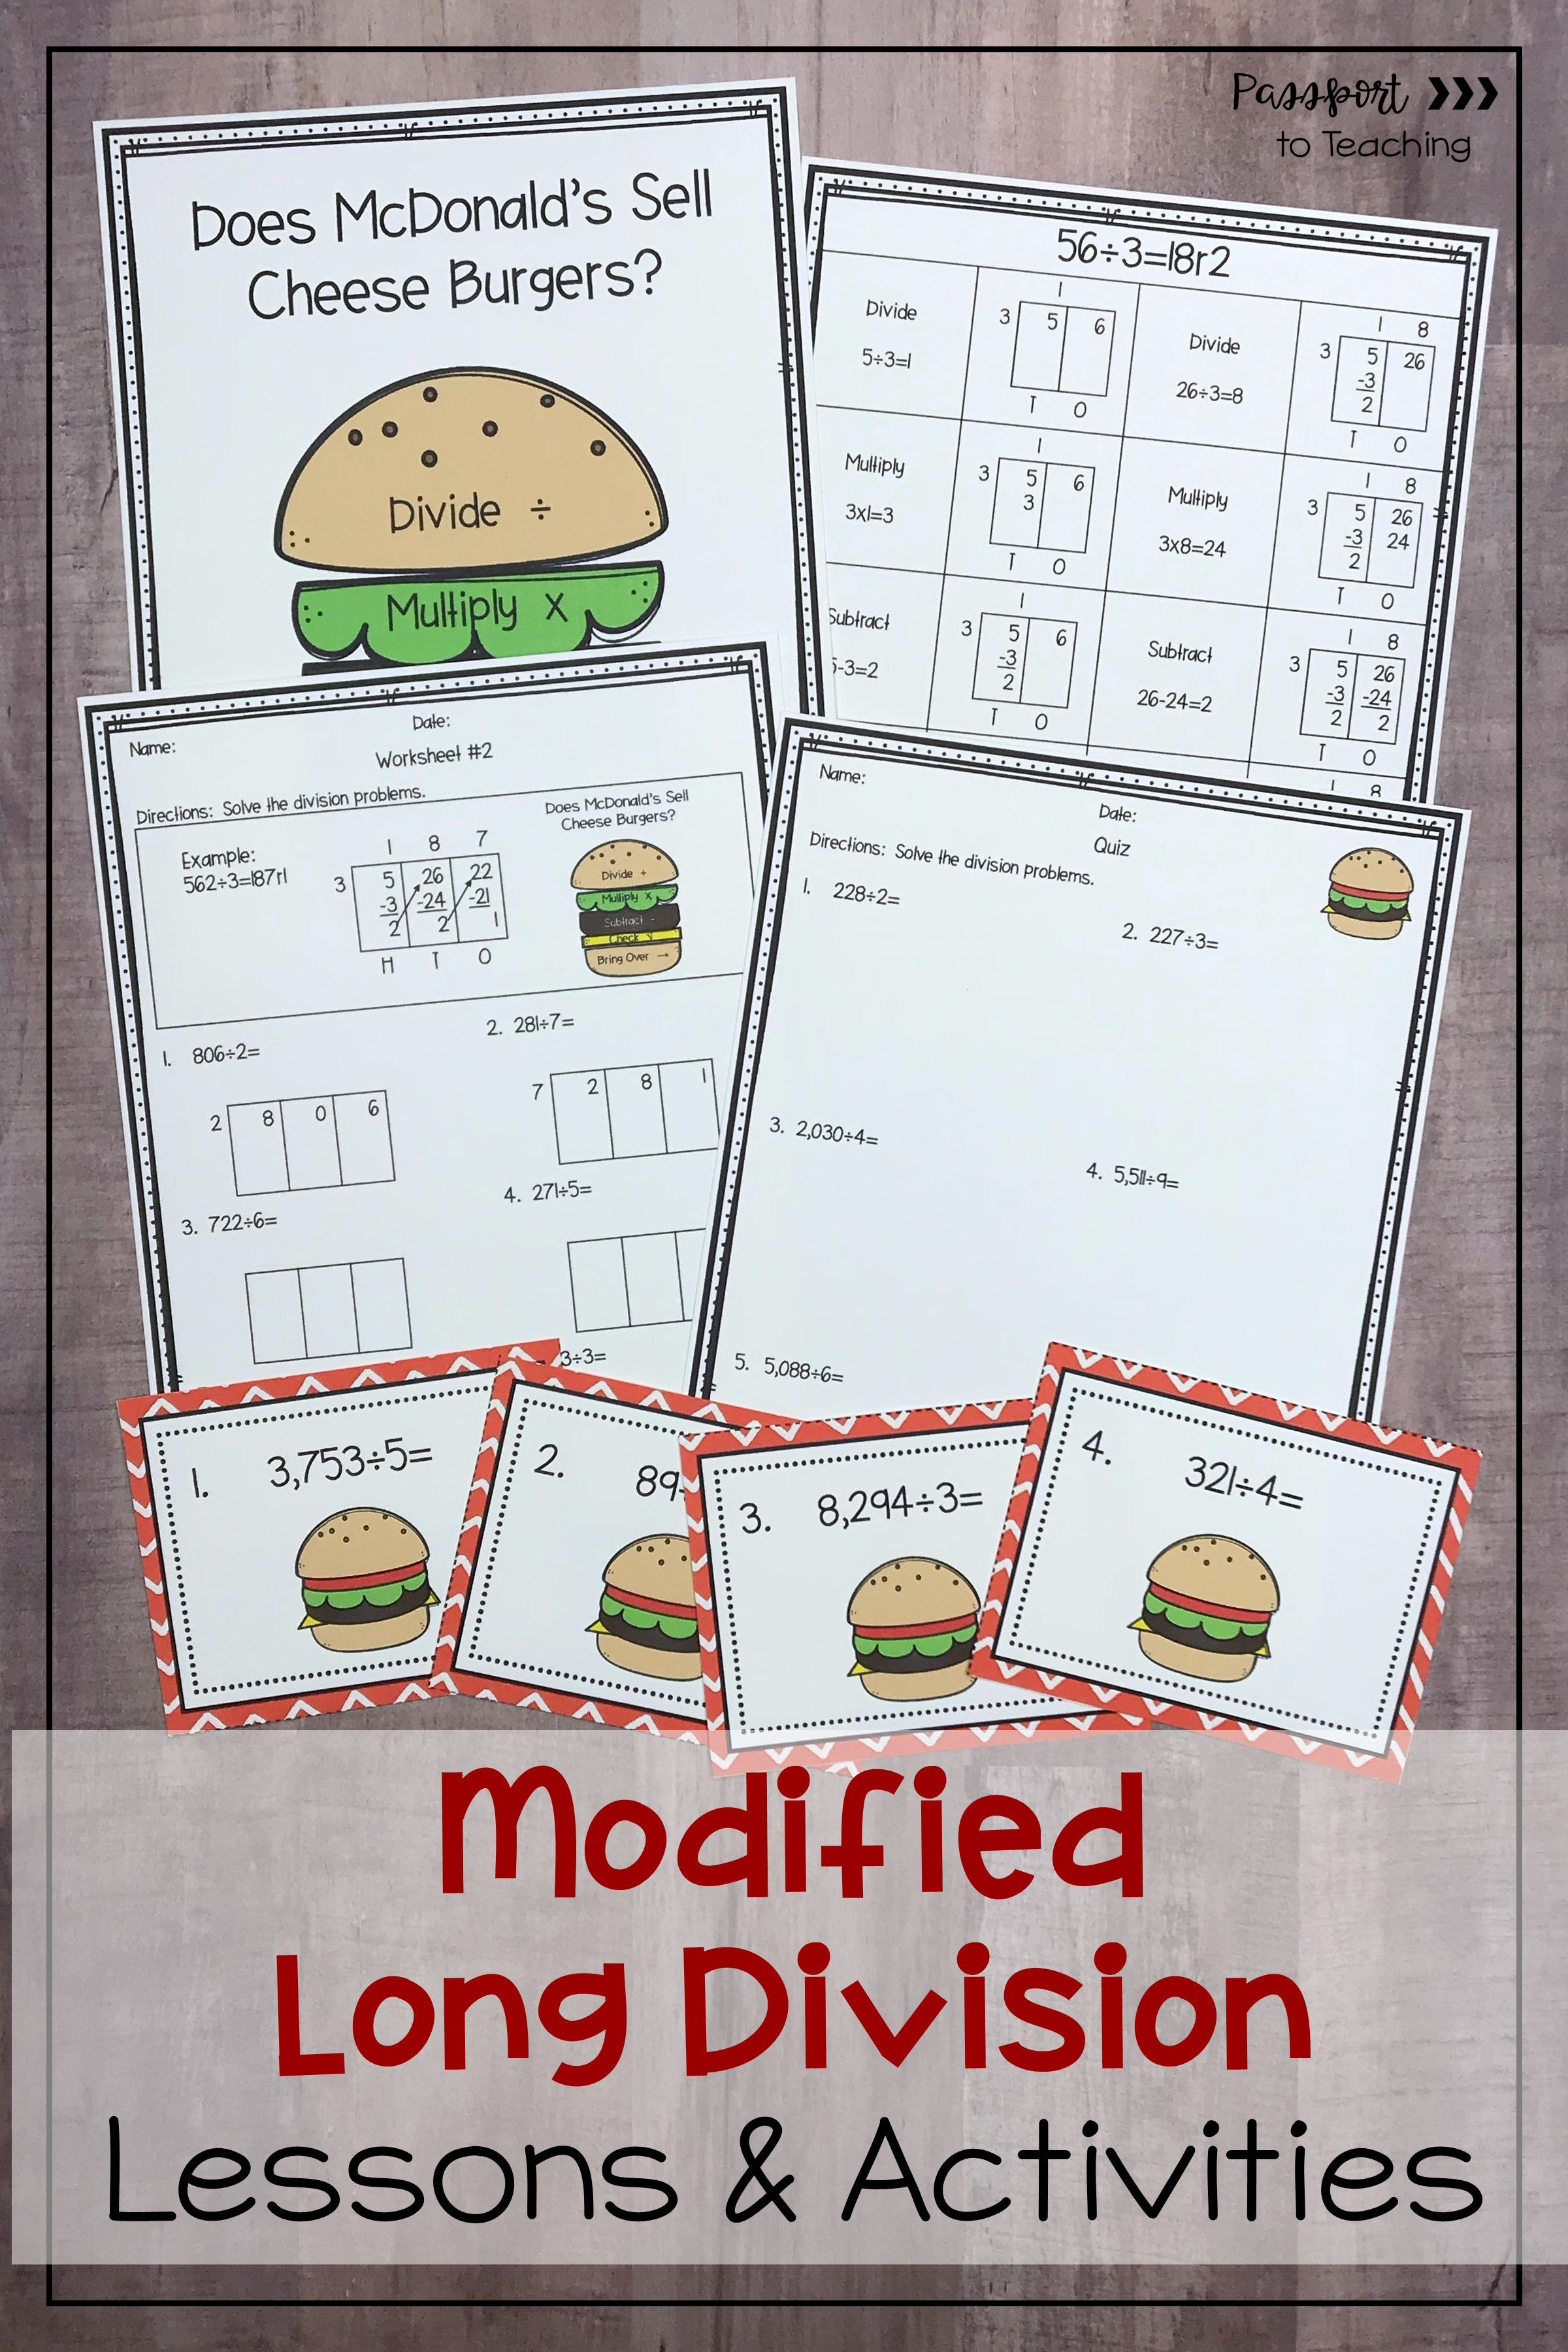 Modified Long Division